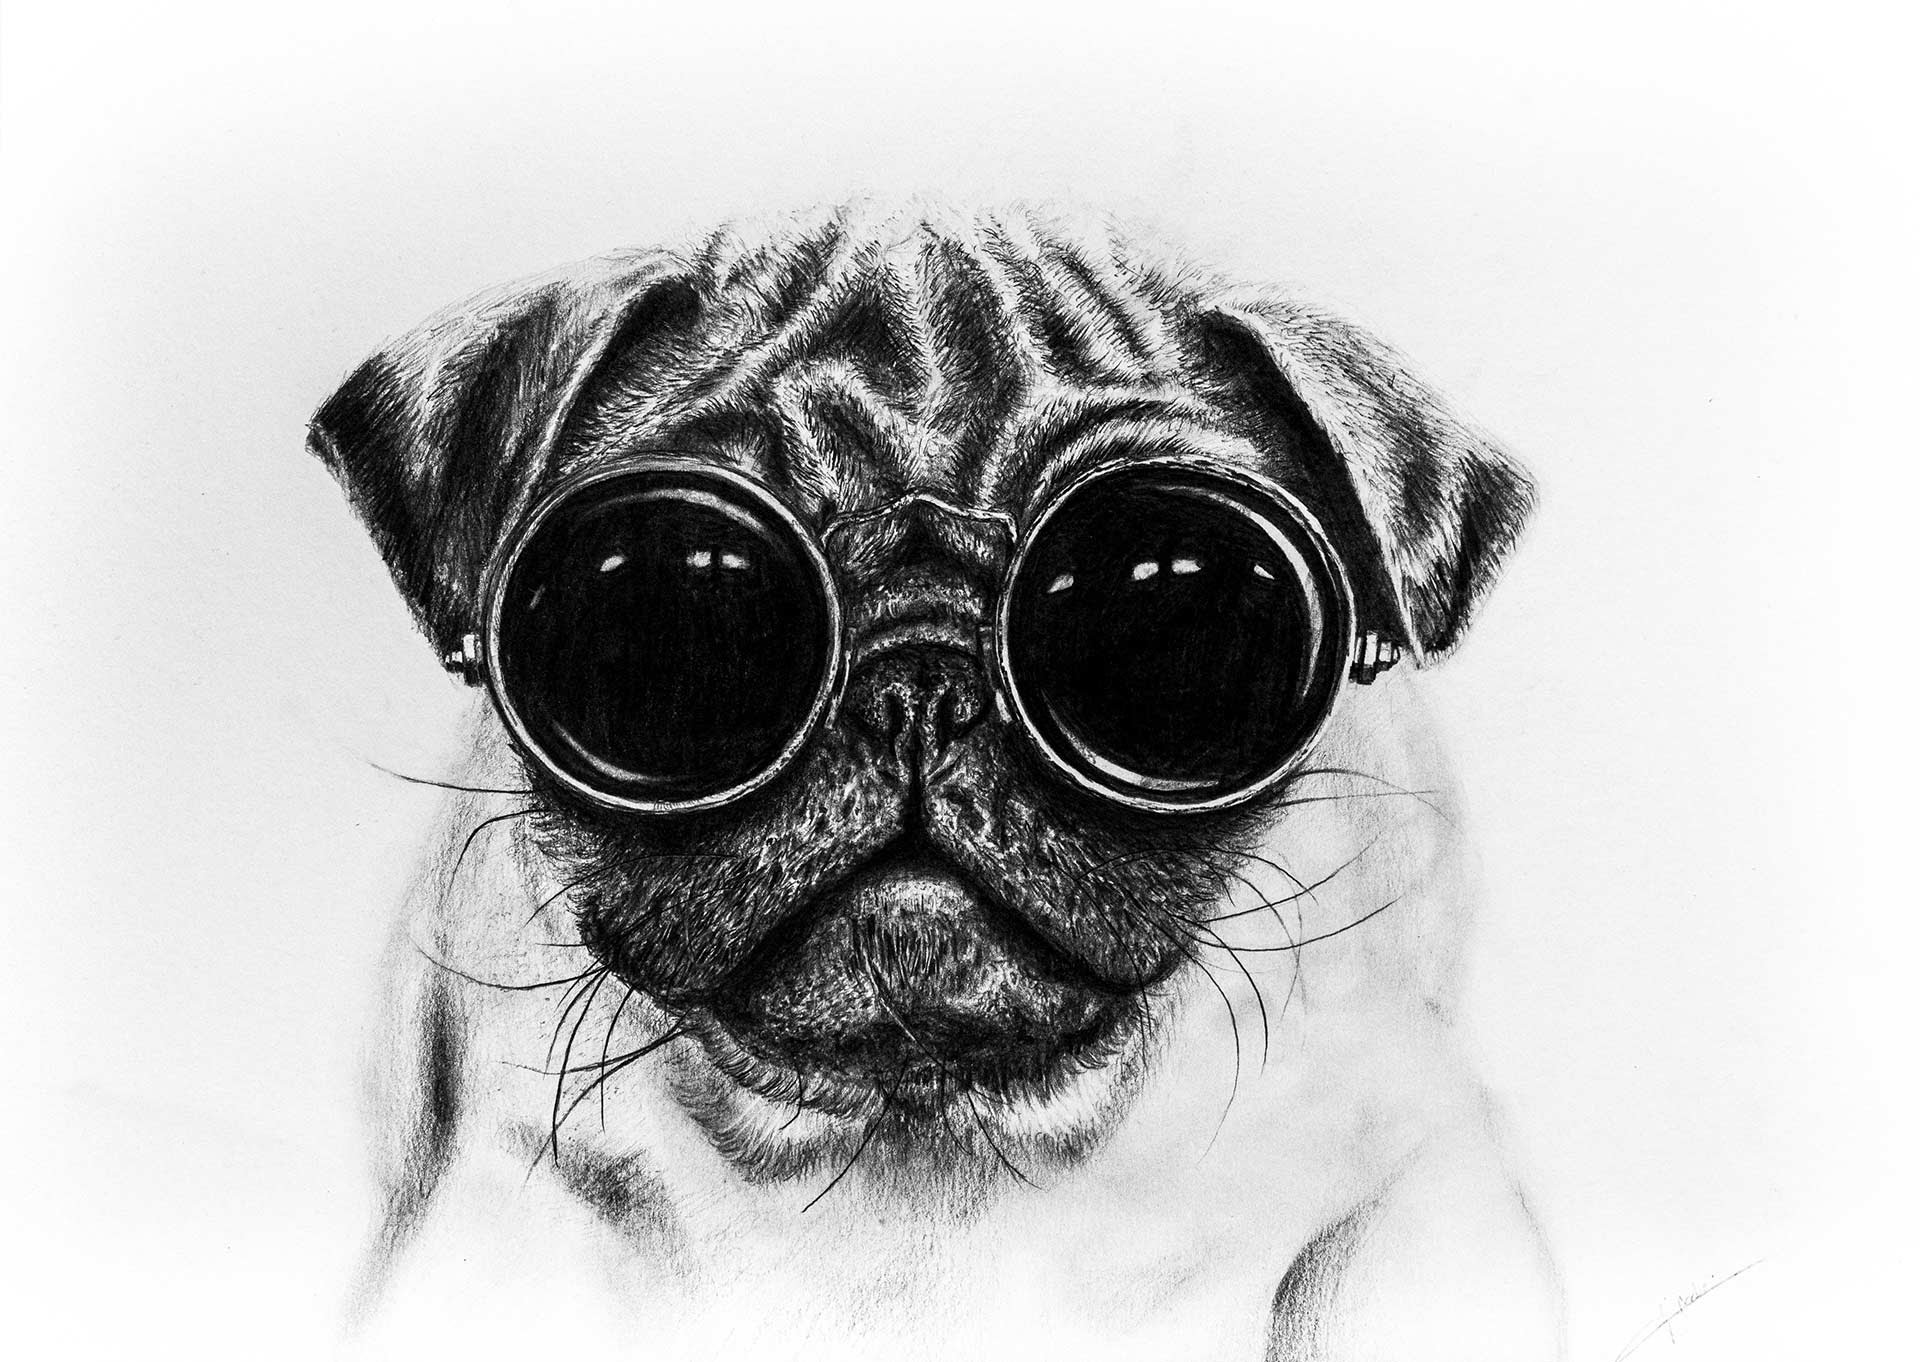 Drawn pug realistic YouTube Drawing Drawing with Pug